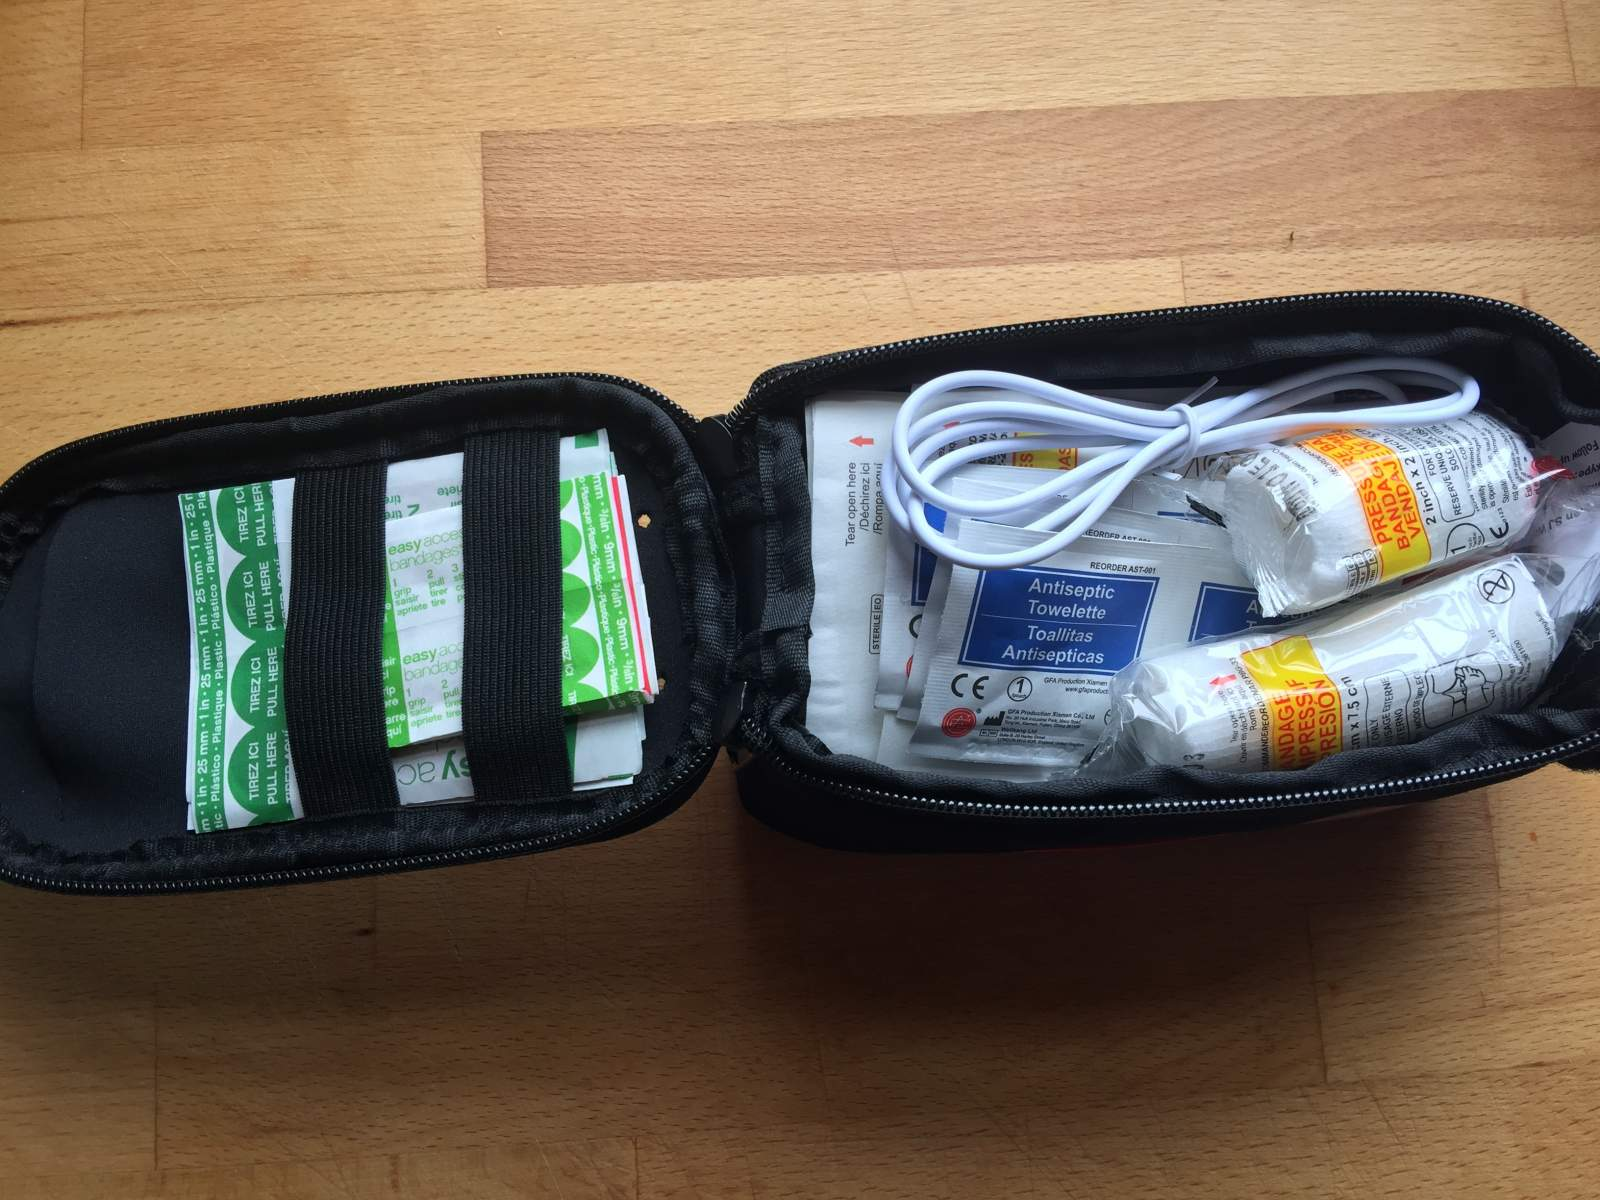 sj works first aid kit for cyclists contents